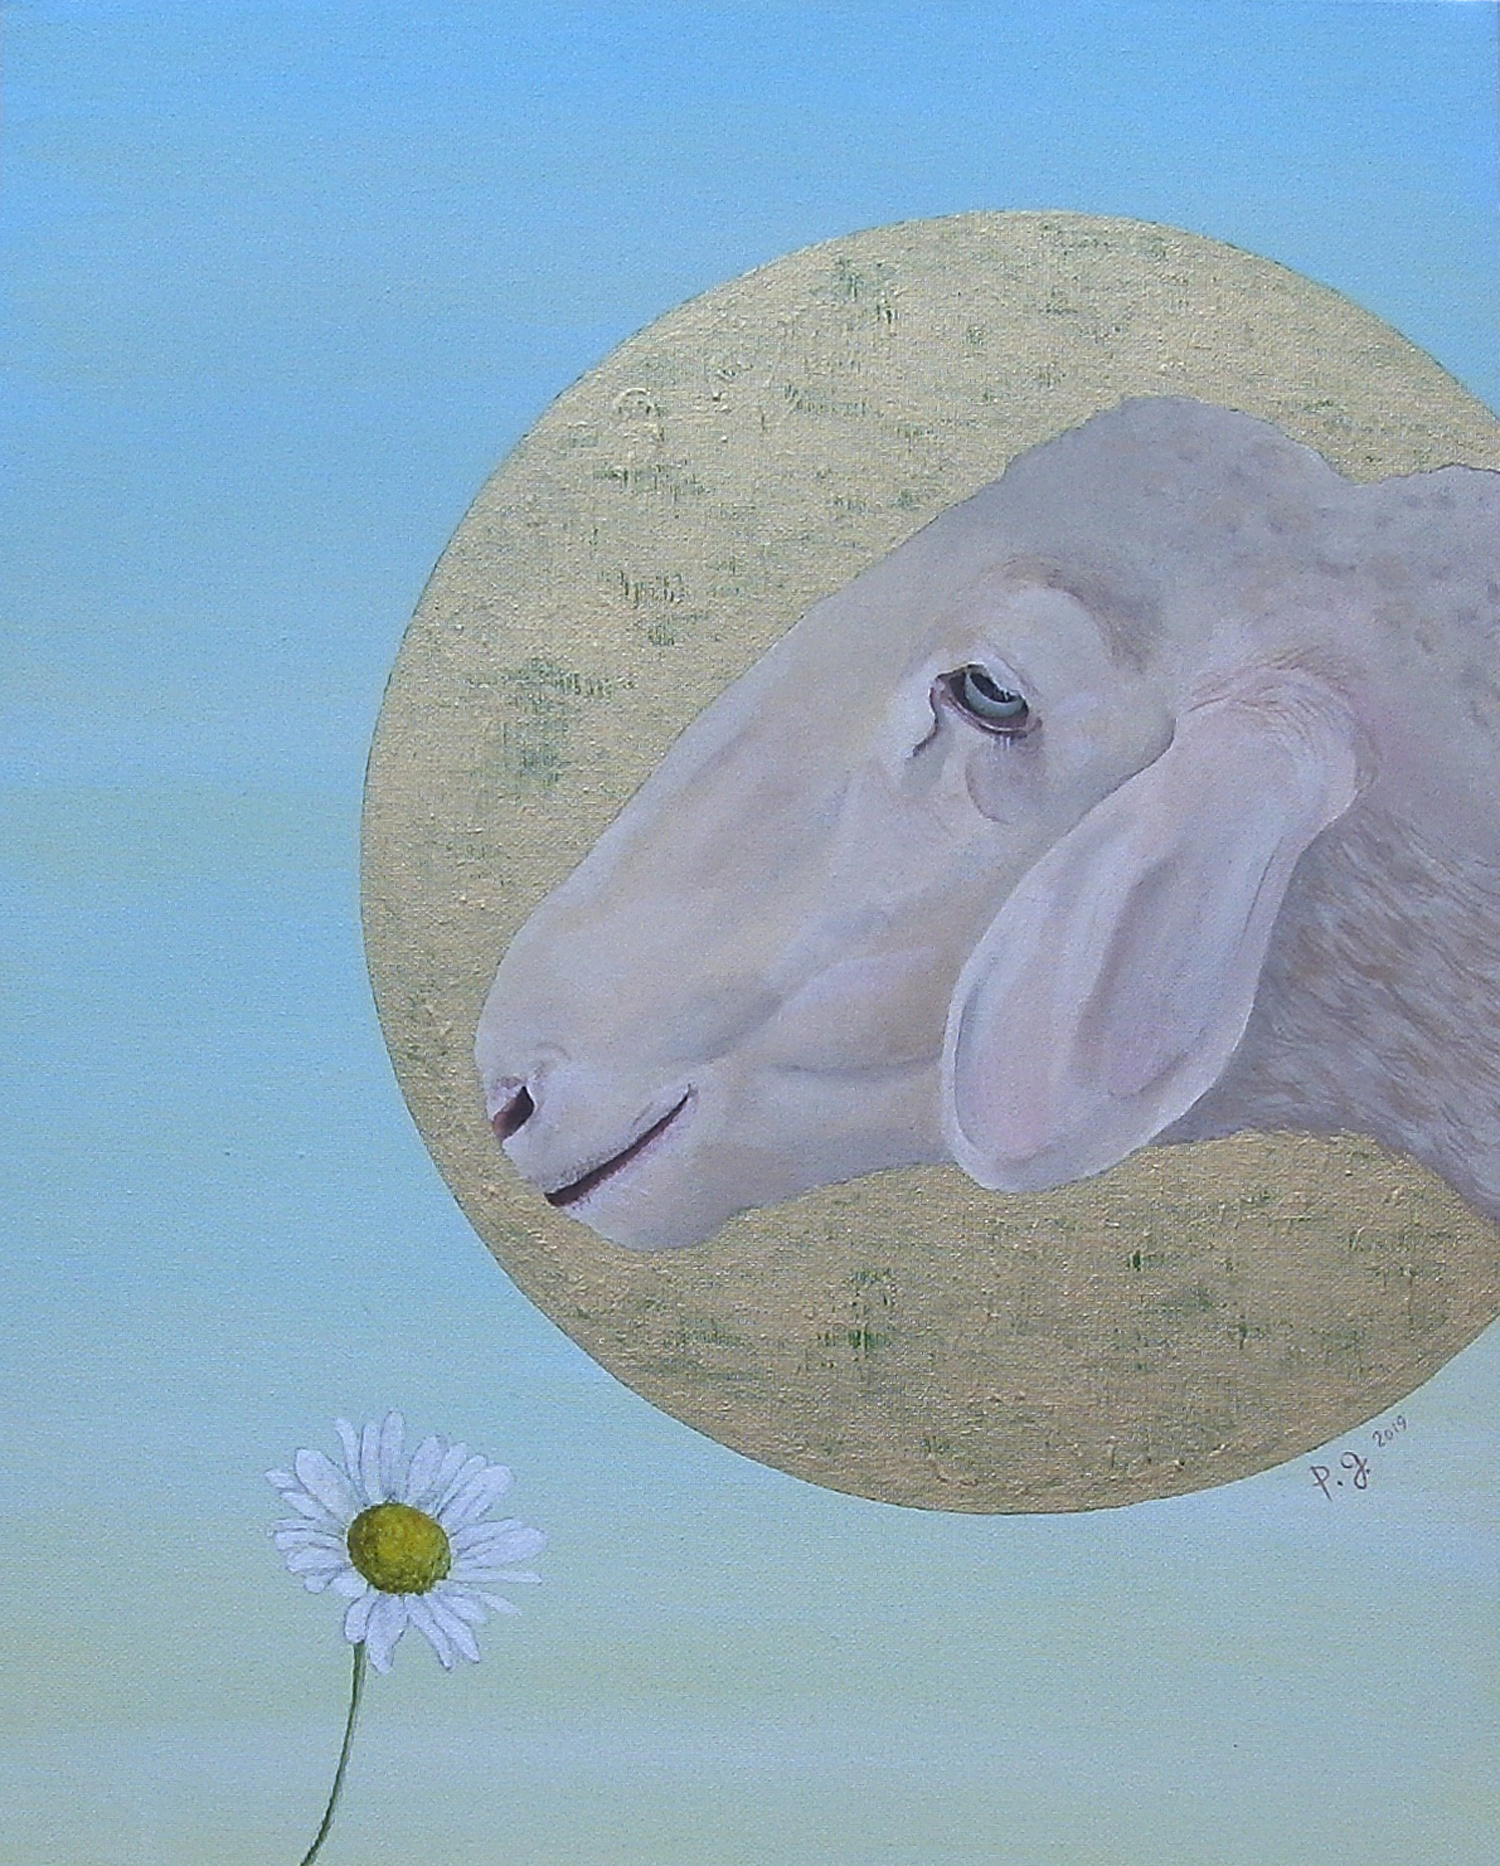 """Sheep And The Last Daisy On The Planet"" - patrick gourgouillat - 2019"